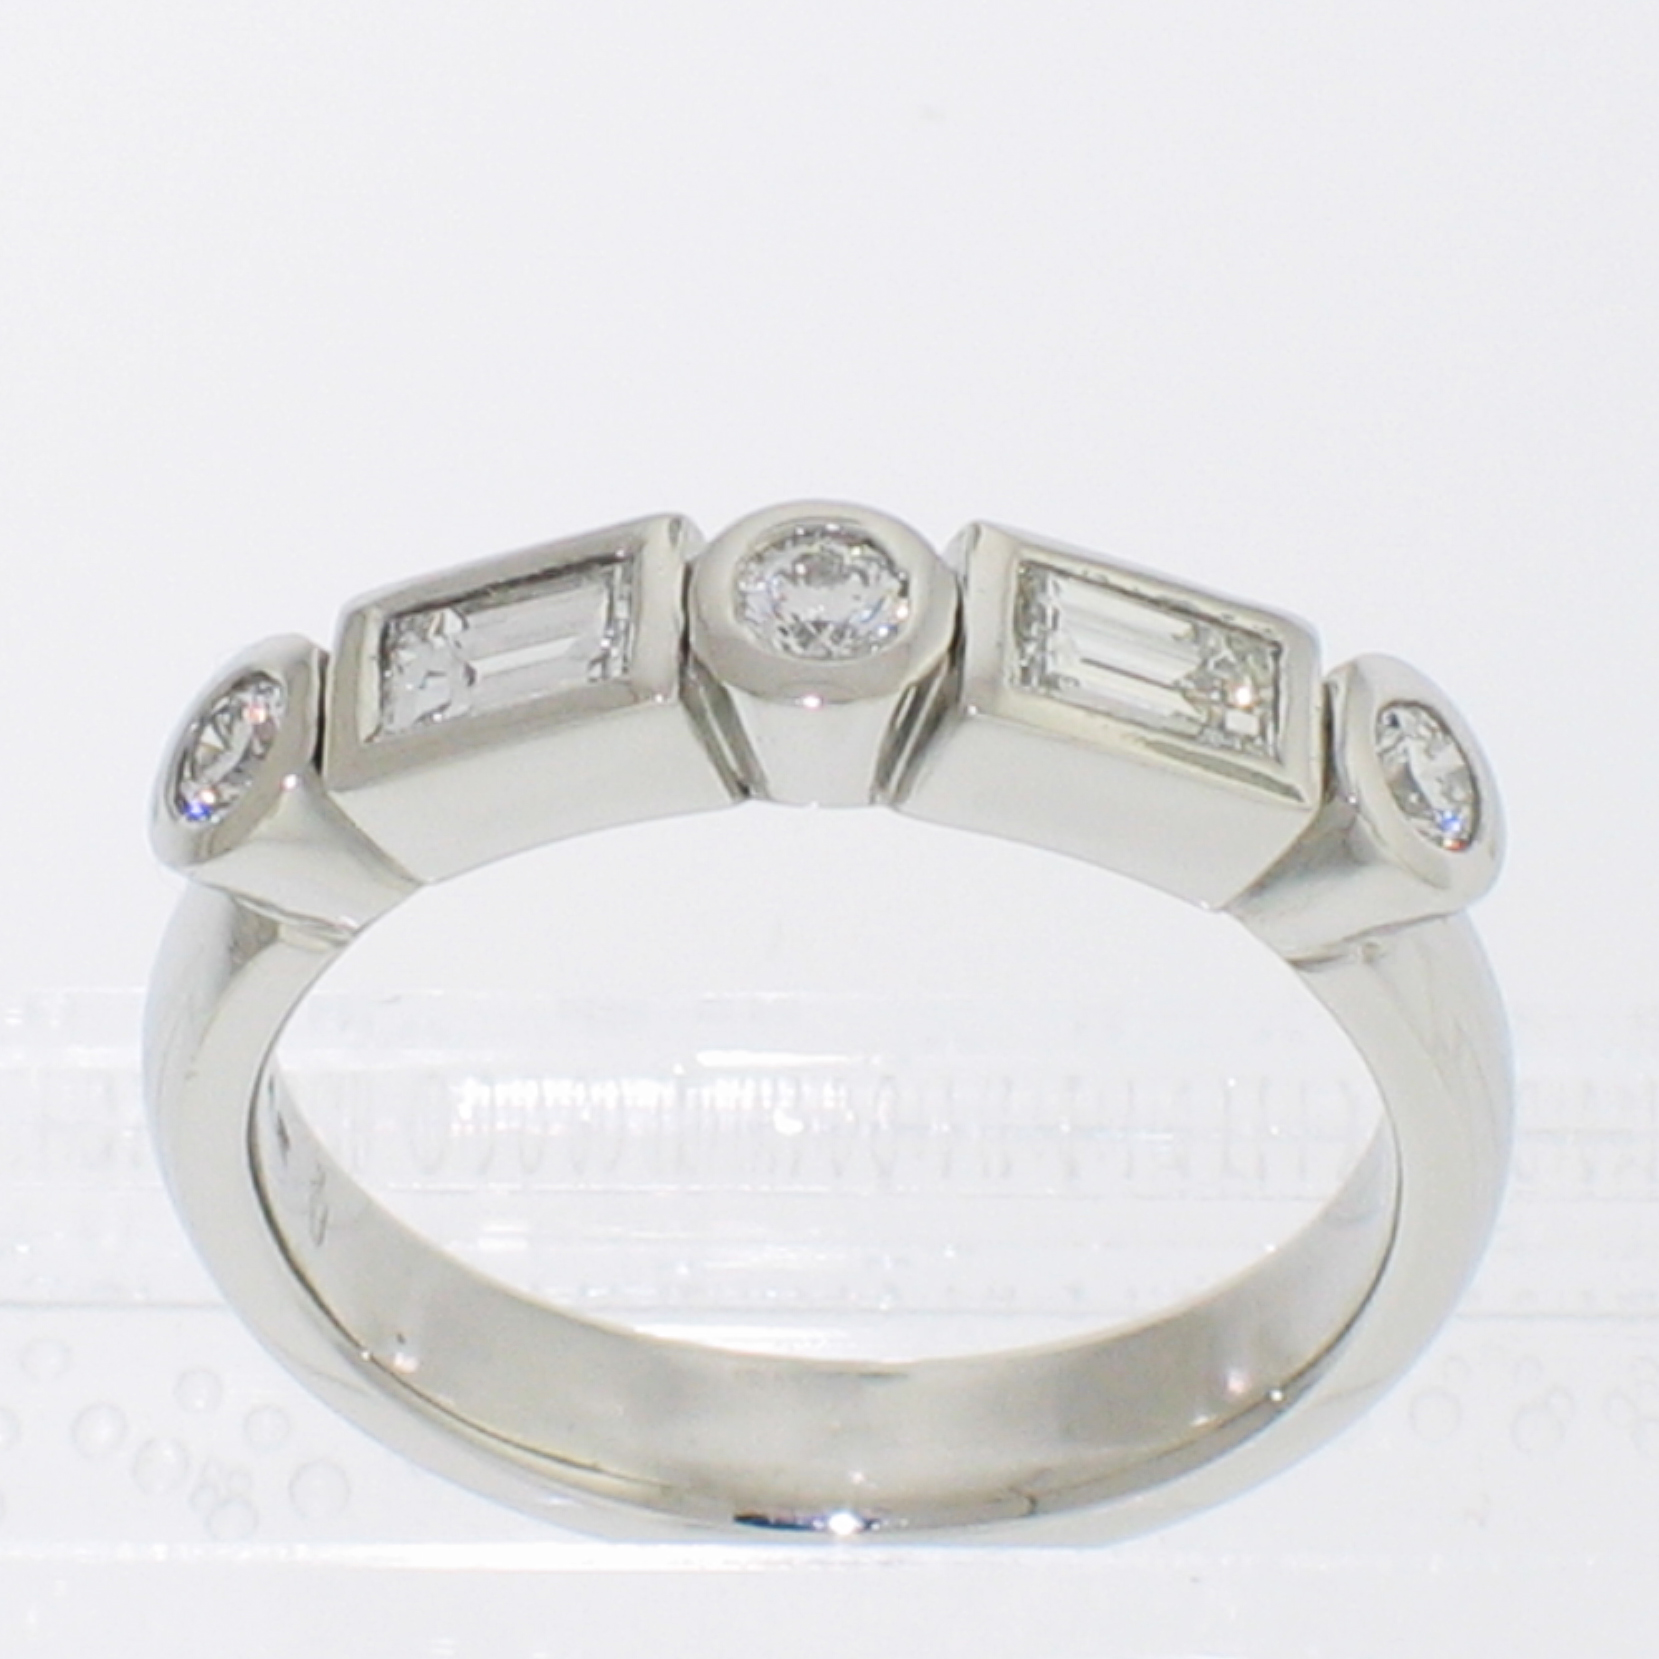 Platinum bezels band with alternating round brilliant and step-cut baguette diamonds